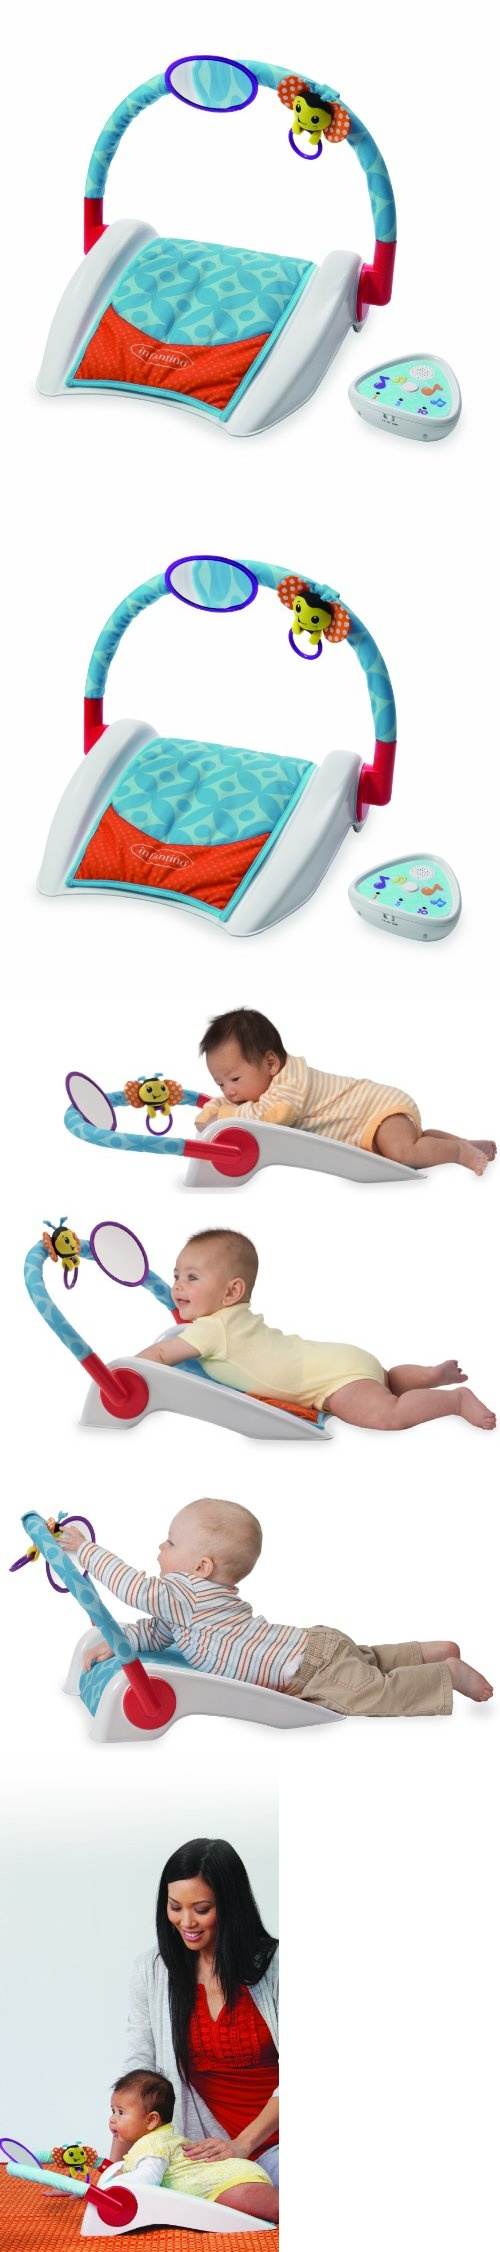 Infantino Right Angle Tummy Triangle - Tackle tummy time from a whole angle! Developed by pediatric occupational therapists, this ingenious tummy time support makes building core strength more comfortable and fun. The inclined surface prop... - Baby Gyms & Playmats - Baby - $19.99